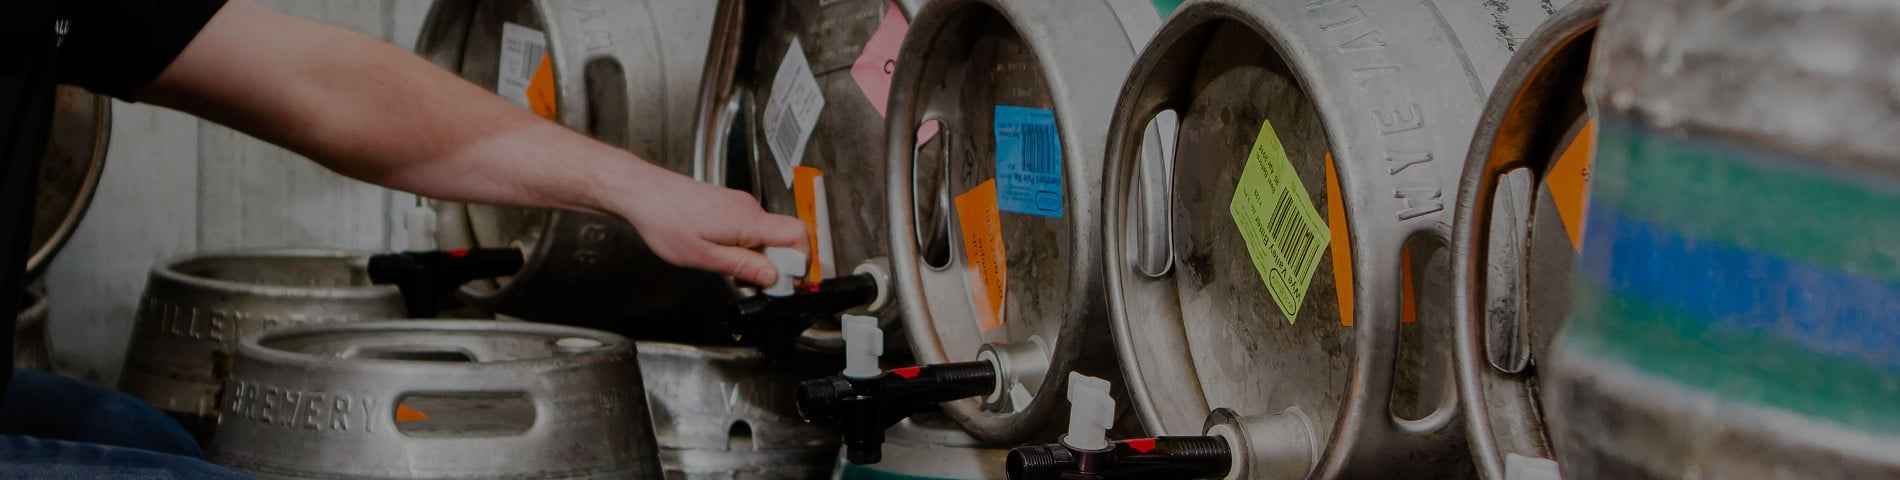 CAMRA members cast their vote on the organisation's future